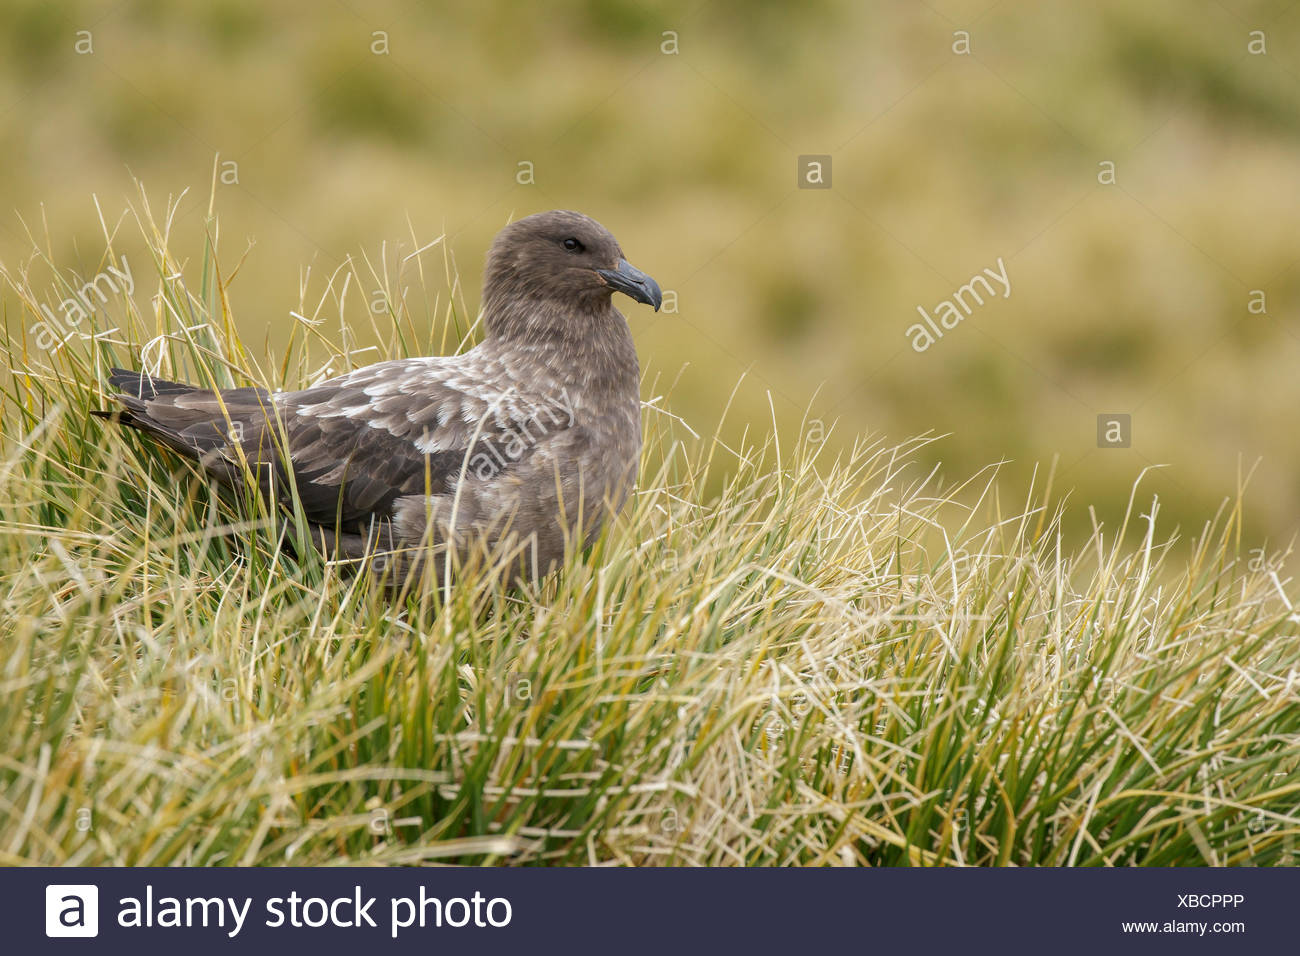 Brown Skua (Stercorarius antarcticus) perched on tussock grass on South Georgia Island. - Stock Image